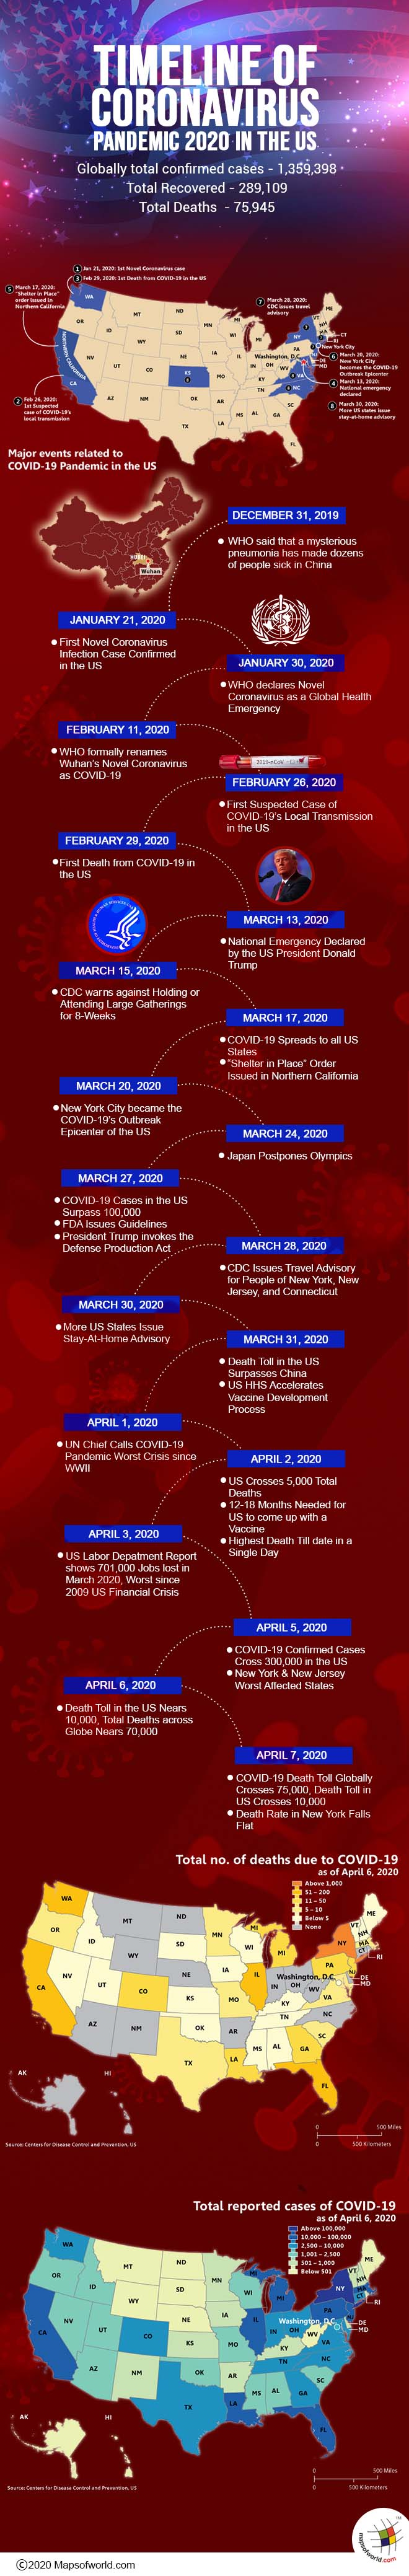 Infographic - Timeline of Coronavirus Pandemic 2020 in the US